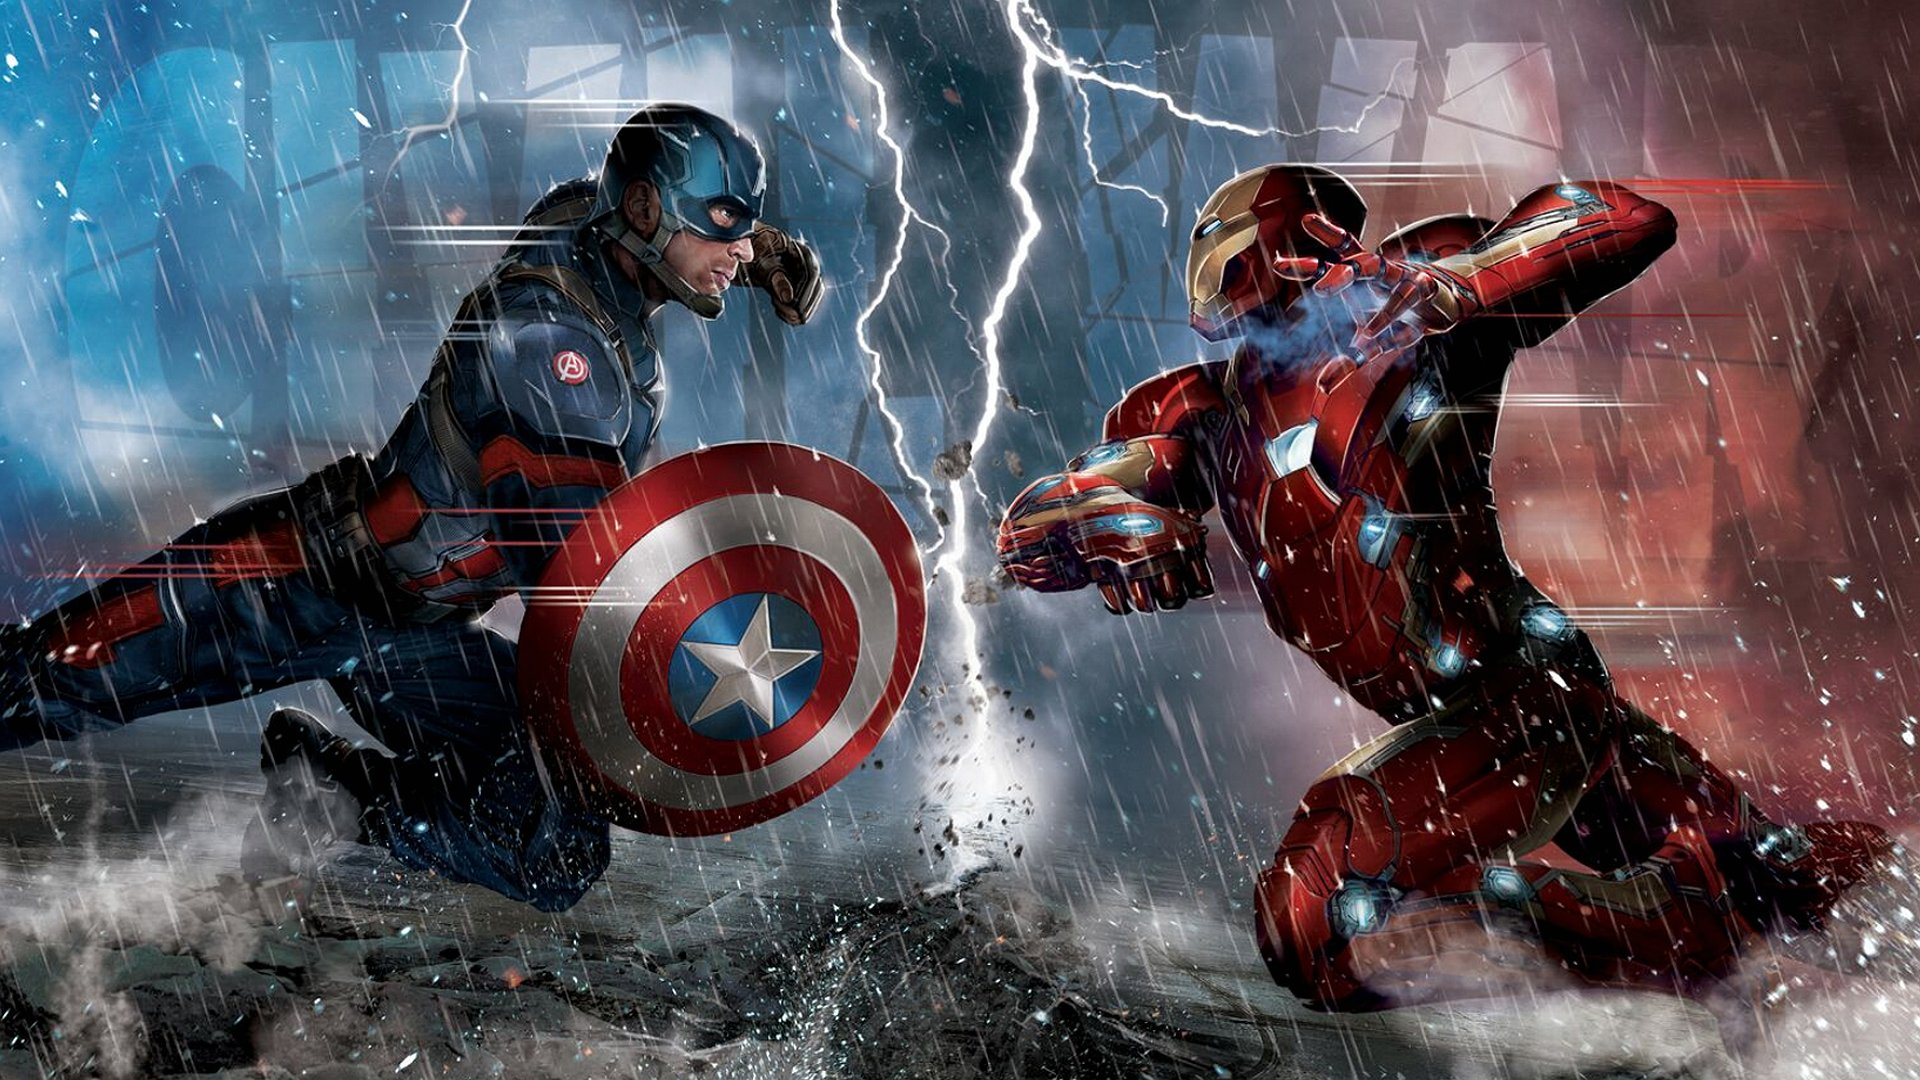 action fighting 1cacw warrior sci fi avengers wallpaper background 1920x1080